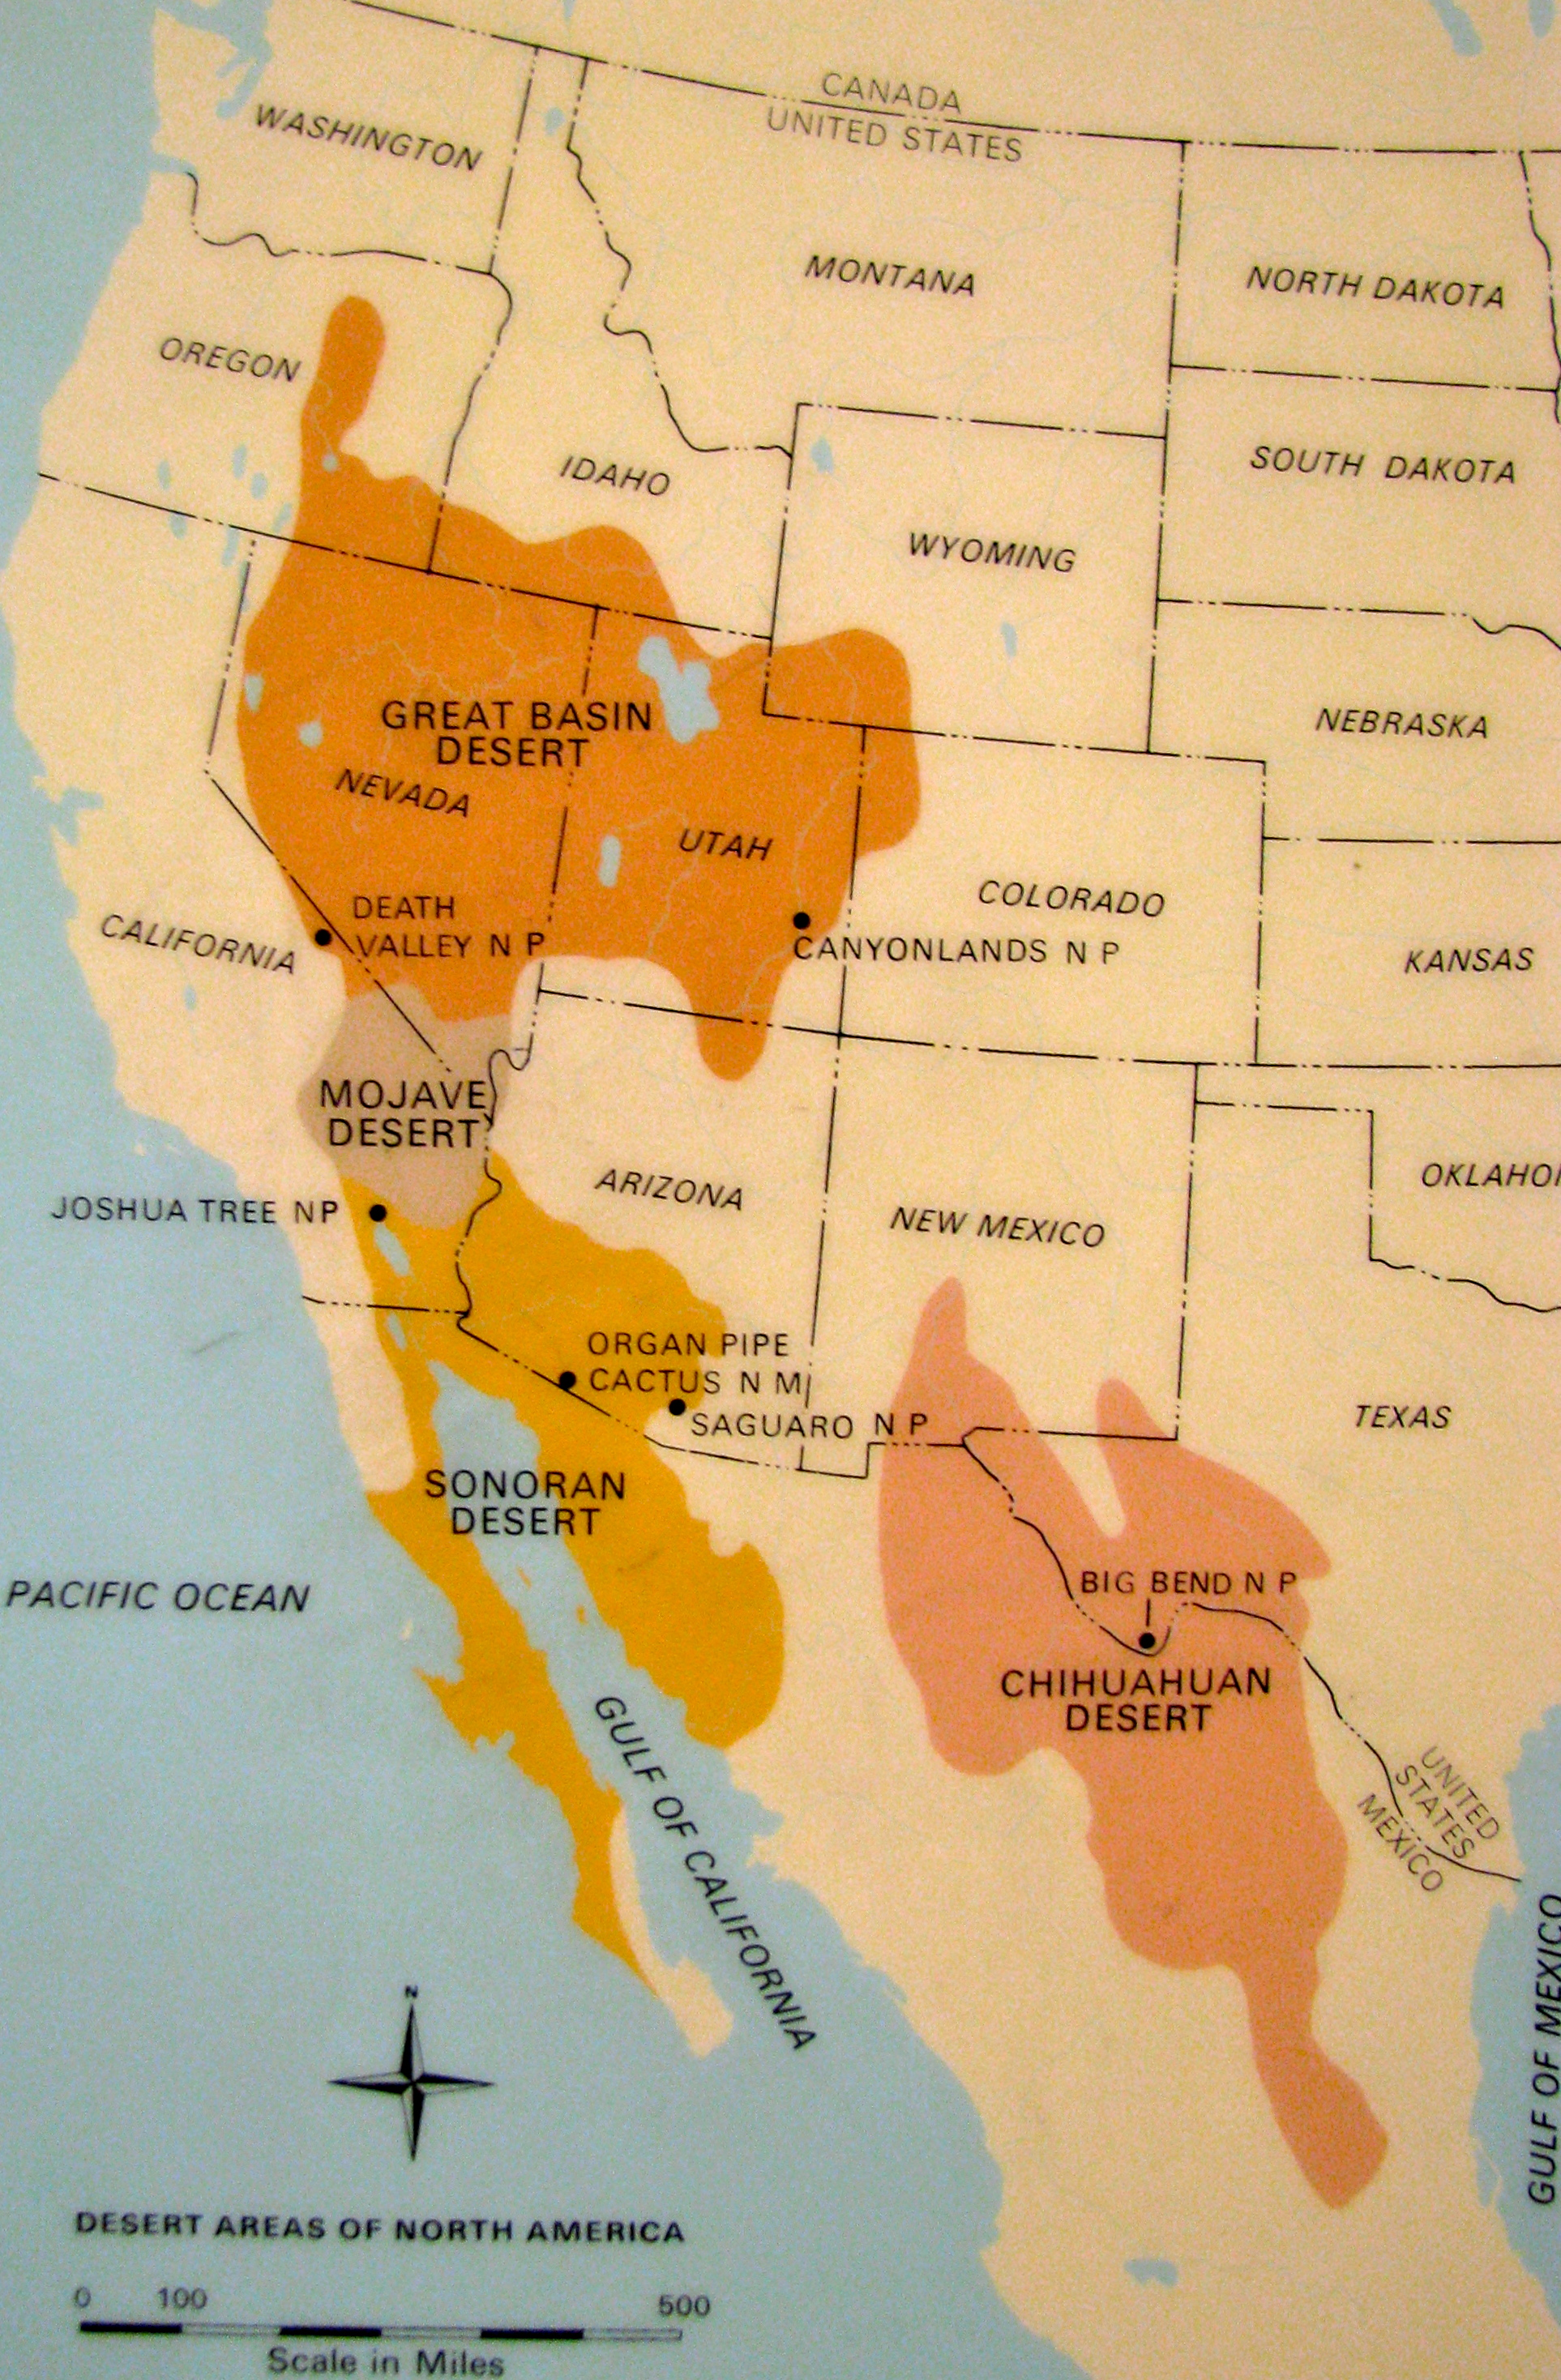 Chihuahuan and Great Basin Deserts